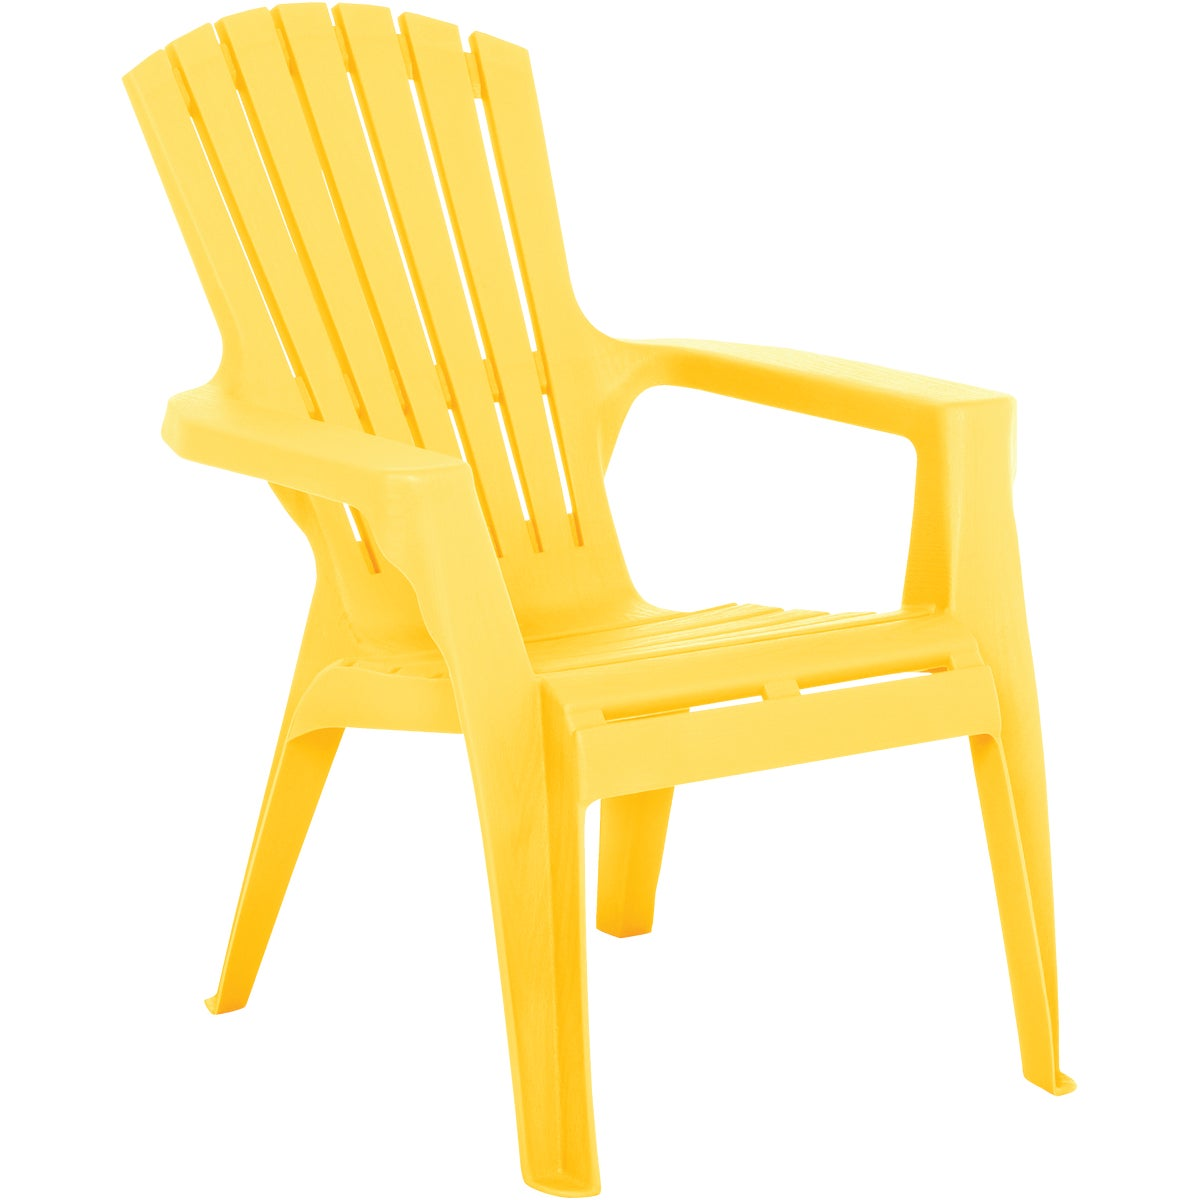 YELLOW KIDS ADIRONDACK - 8460-19-4748 by Adams Mfg Patio Furn